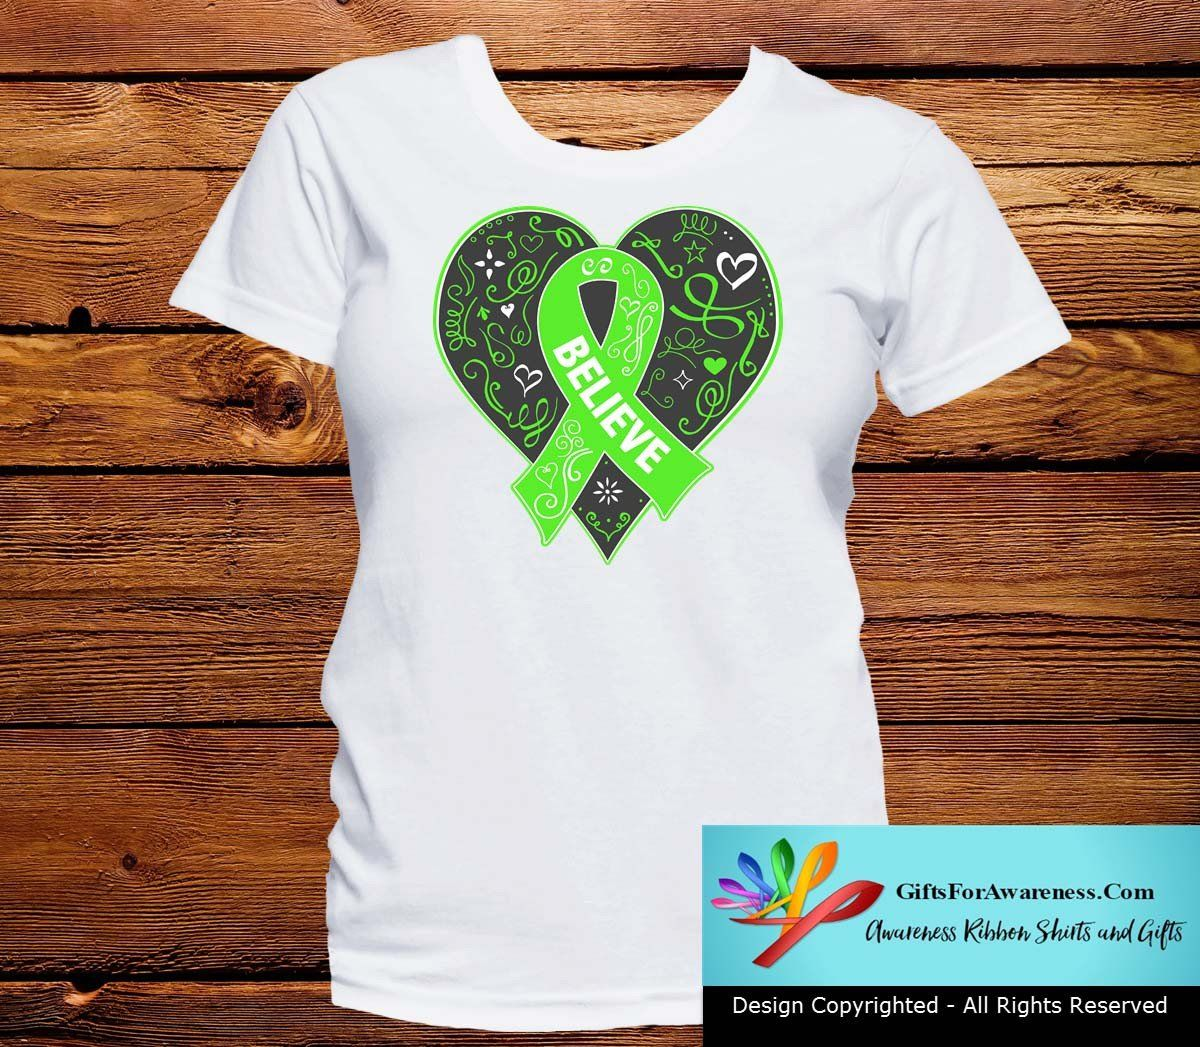 Believe Non-Hodgkin's Lymphoma shirts featuring a beautiful, whimsical heart design and elements spotlighting a lime green ribbon for awareness by GiftsForAwareness.Com.